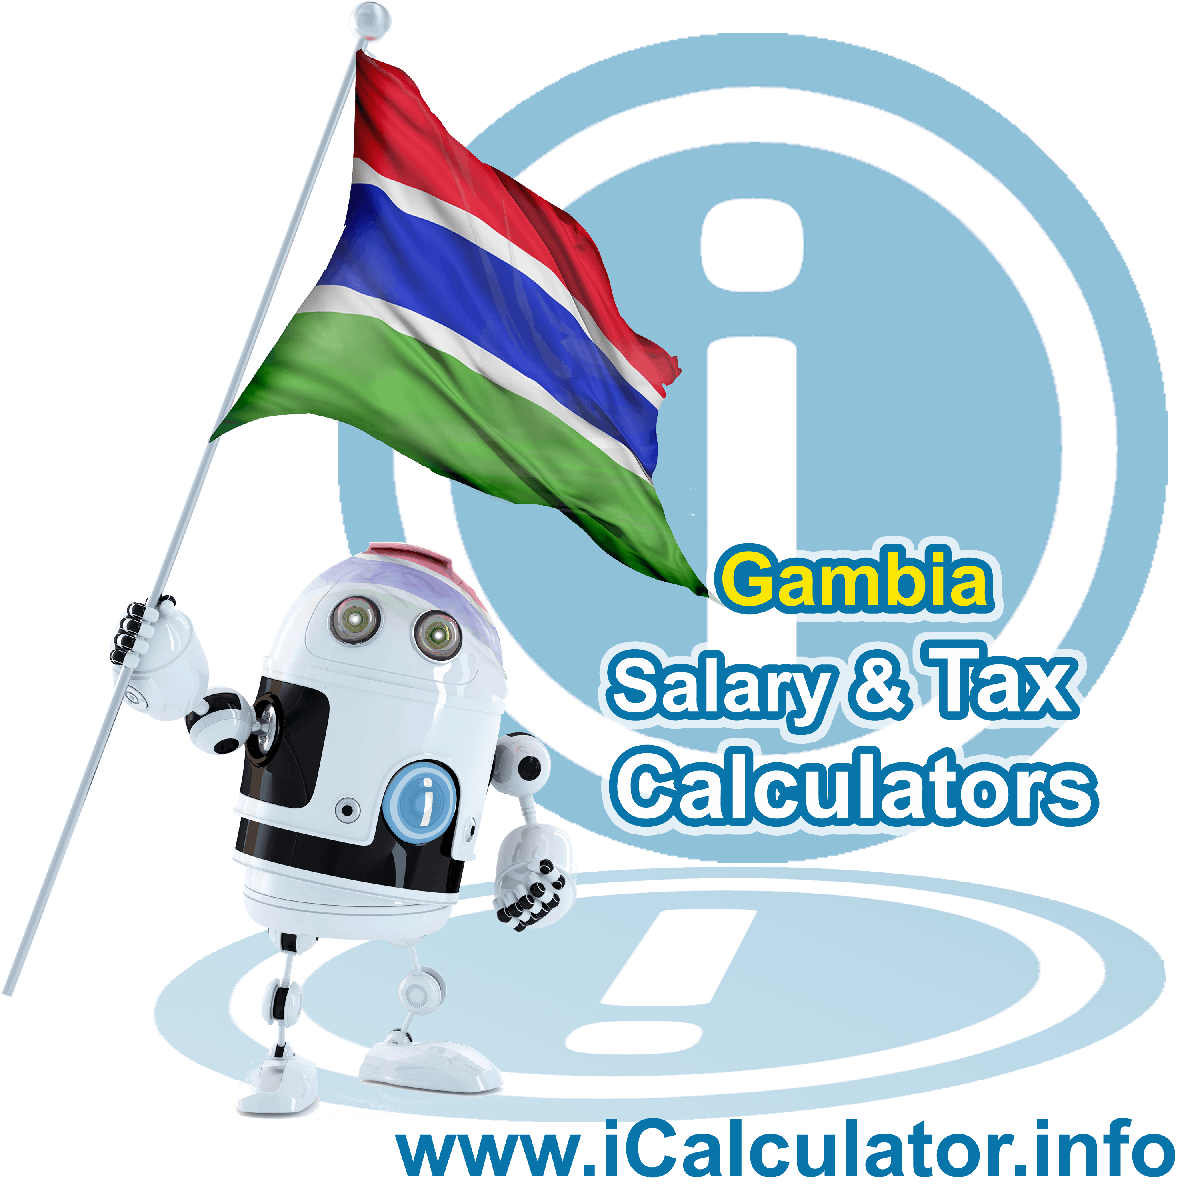 Gambia Wage Calculator. This image shows the Gambia flag and information relating to the tax formula for the Gambia Tax Calculator